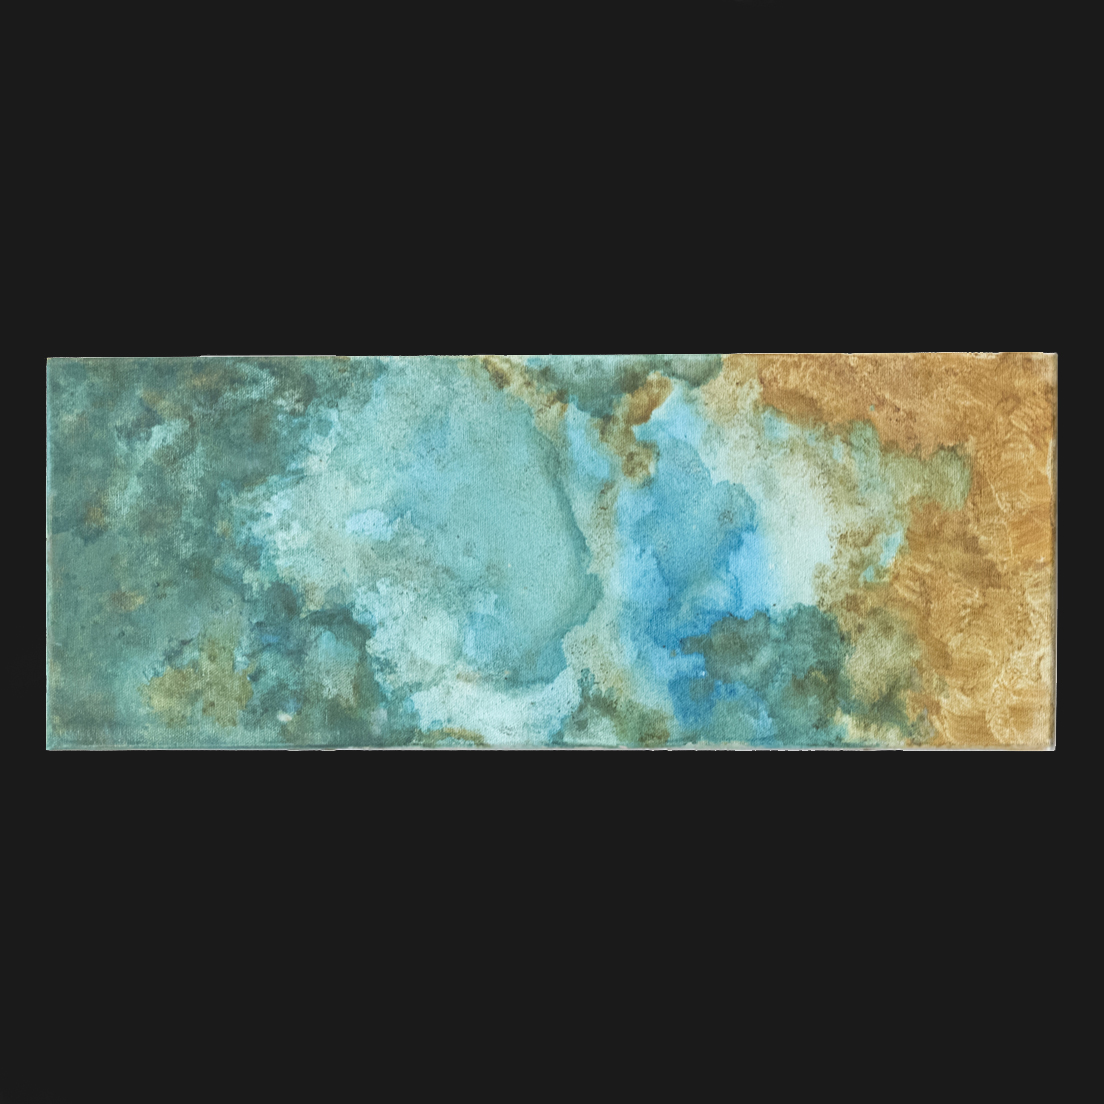 Azane — bronze patina on canvas